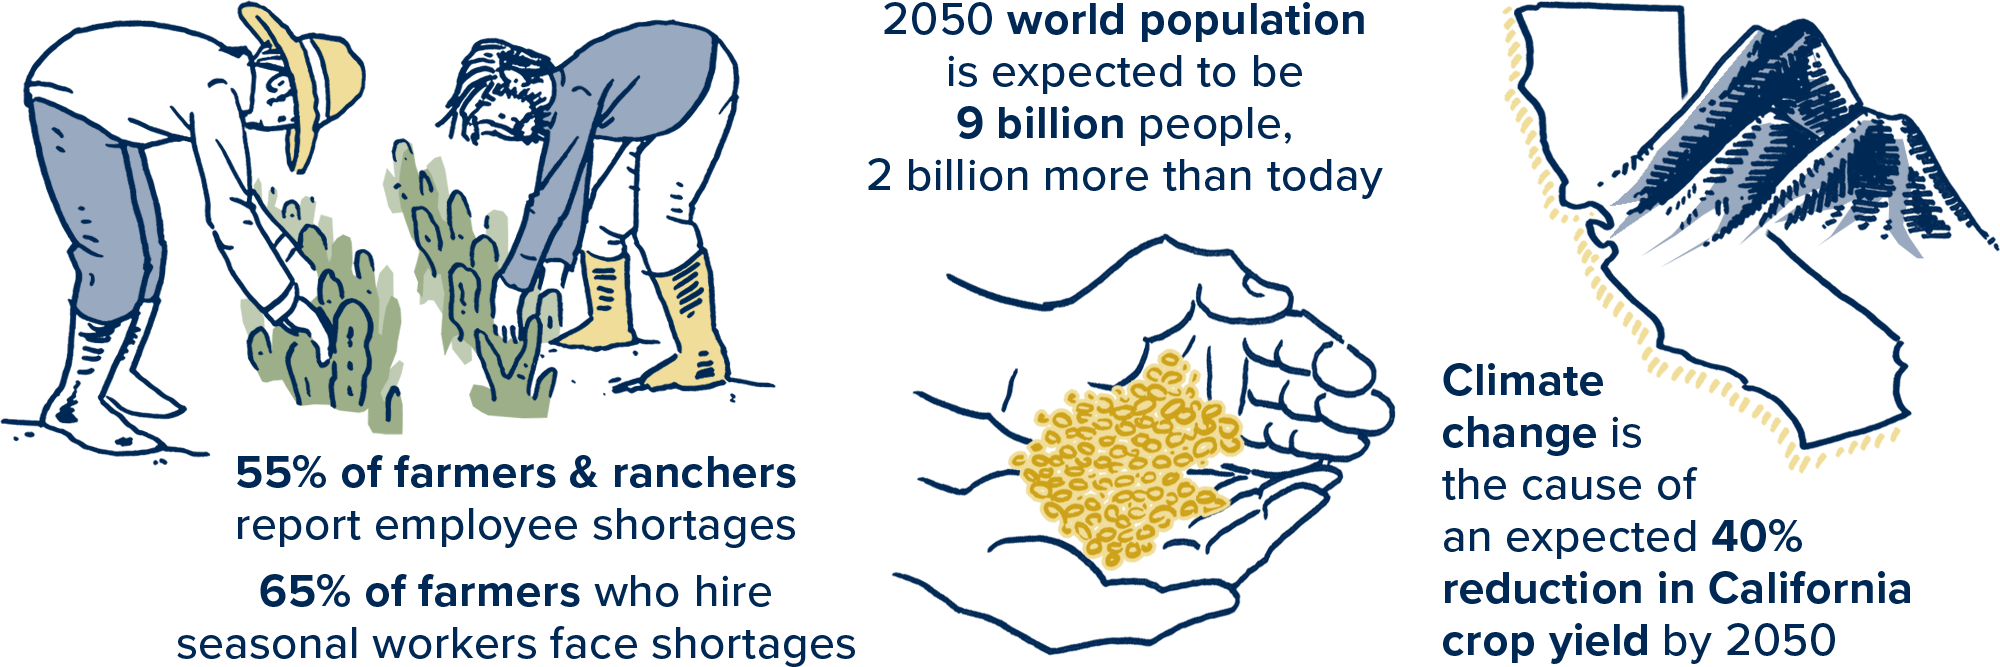 Future of Agriculture and Food: Facts and Figures for Feeding 9 Billion by 2050